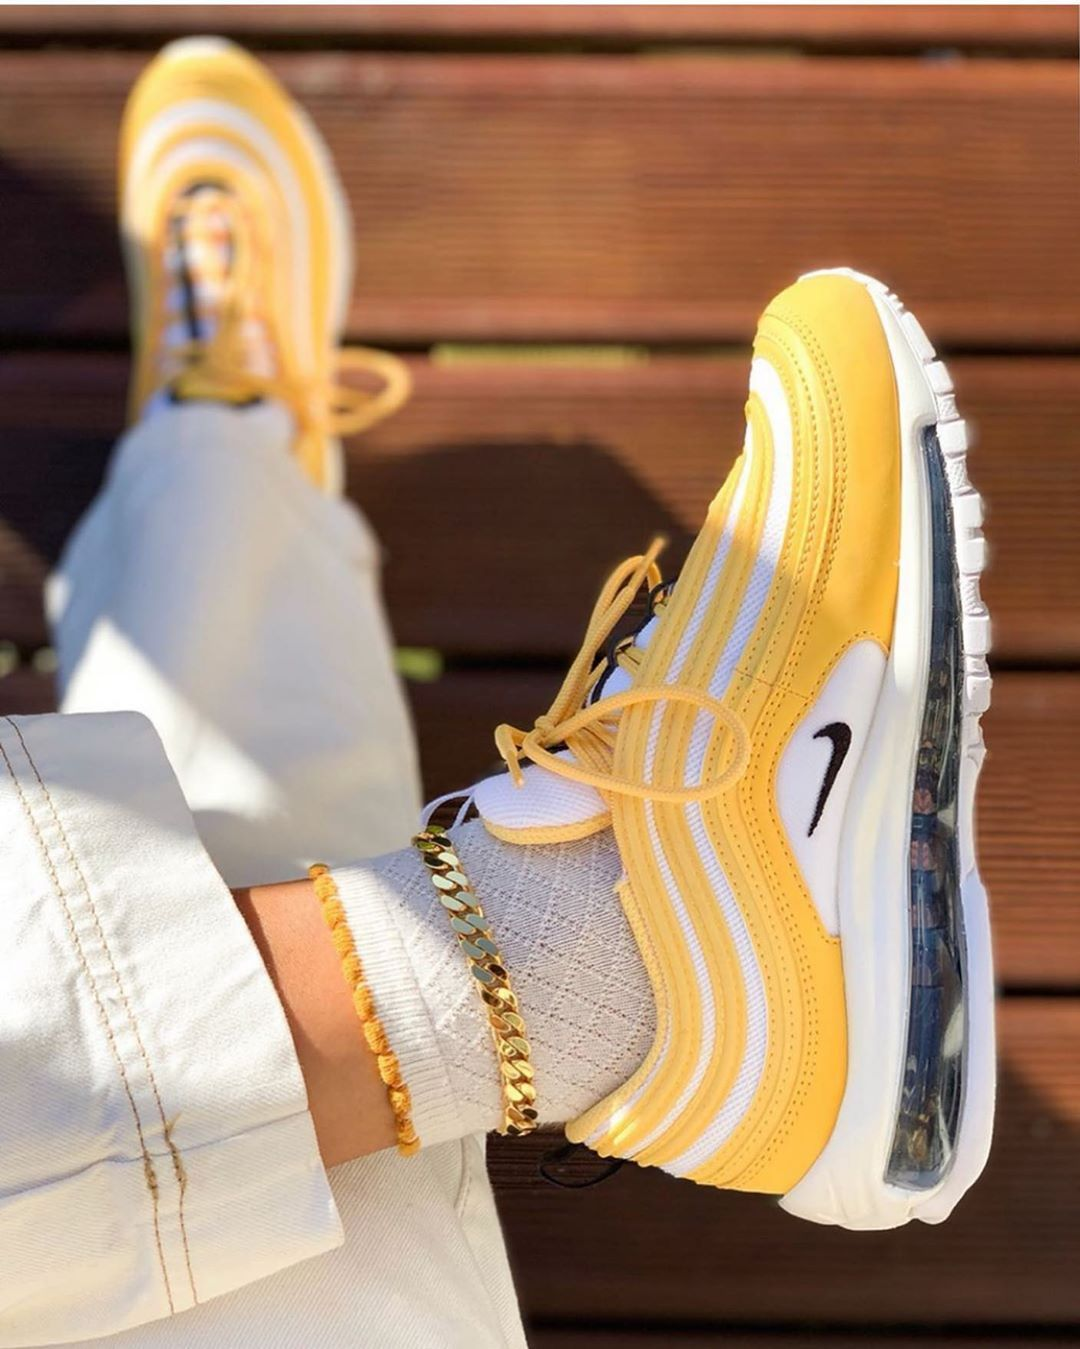 Nike Airmax 97 X Essential These 97s Are Looking So Good On Foot Shouts To Sallyssneakers On Her Pair Nike Air Max 97 Nike Air Max Air Max 97